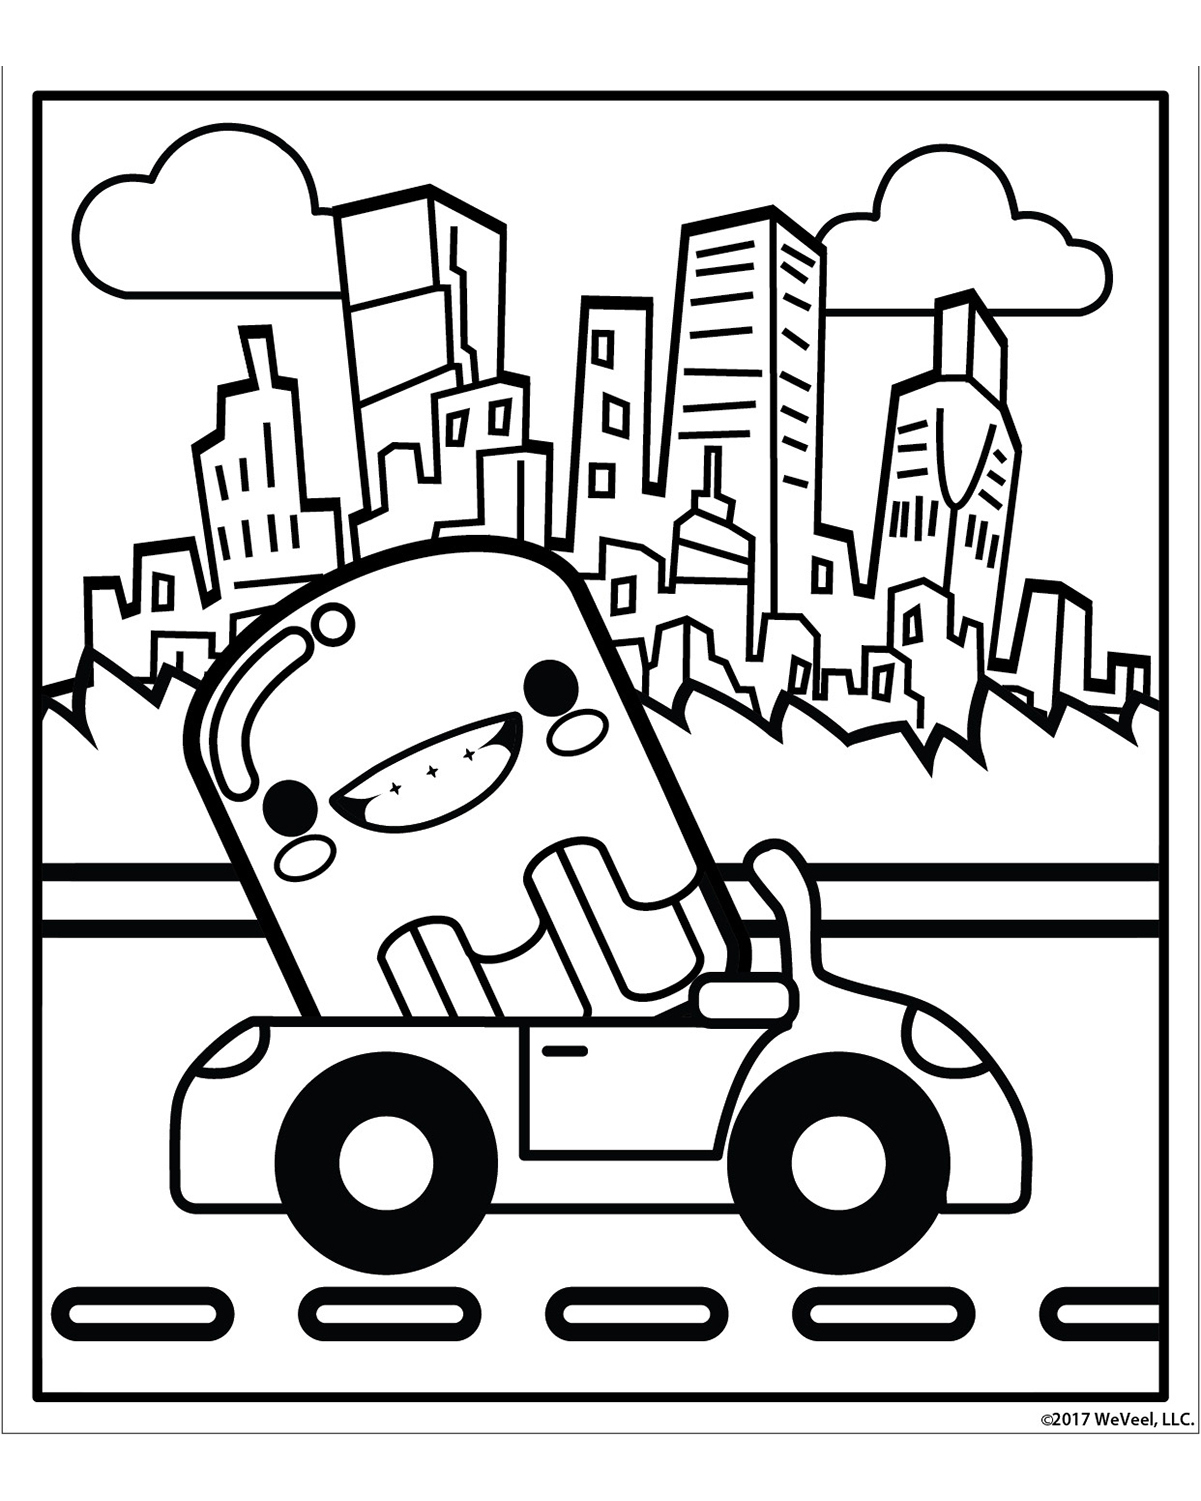 sugar rush coloring pages - photo#14